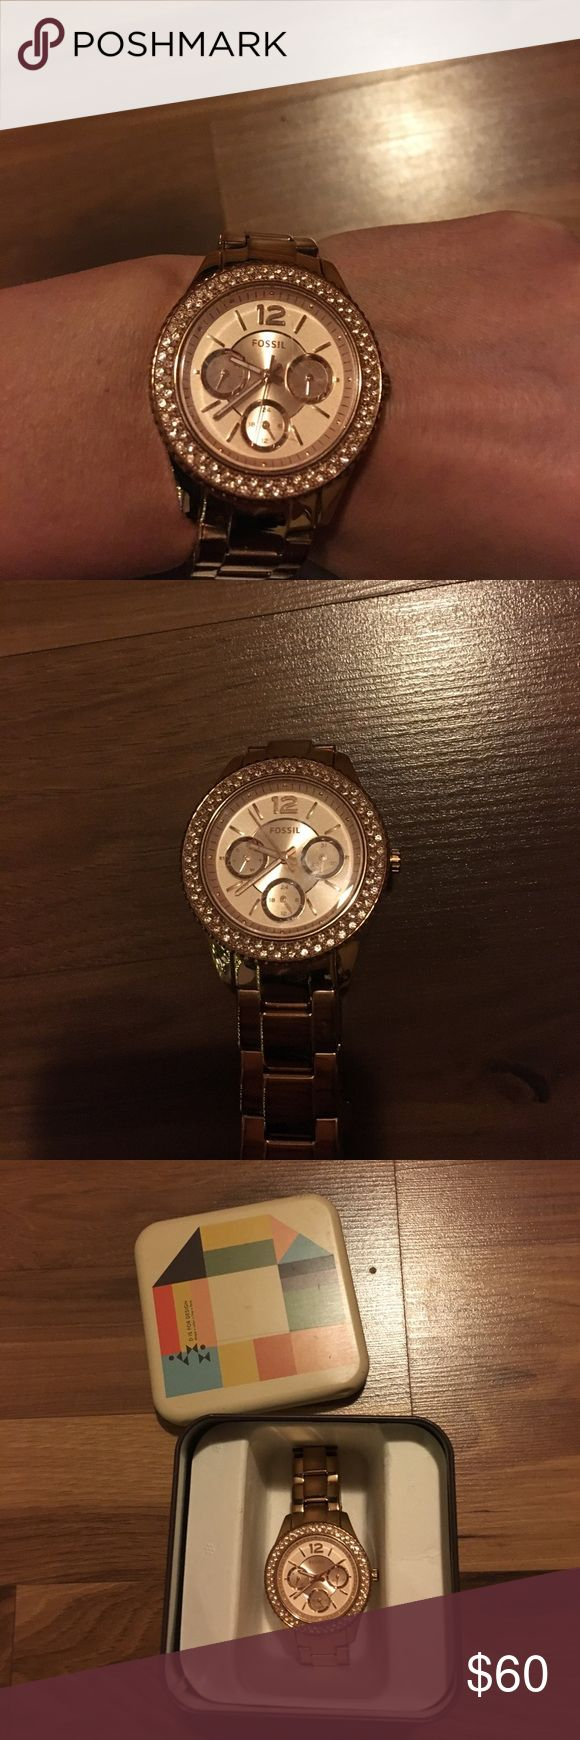 Fossil gold watch Perfect condition gold fossil watch with sparkle detail in box! I did have 2 of the links removed for my size, but I will include them in the box. I had this done free at Macy's since they carry fossil brand there! Fossil Accessories Watches